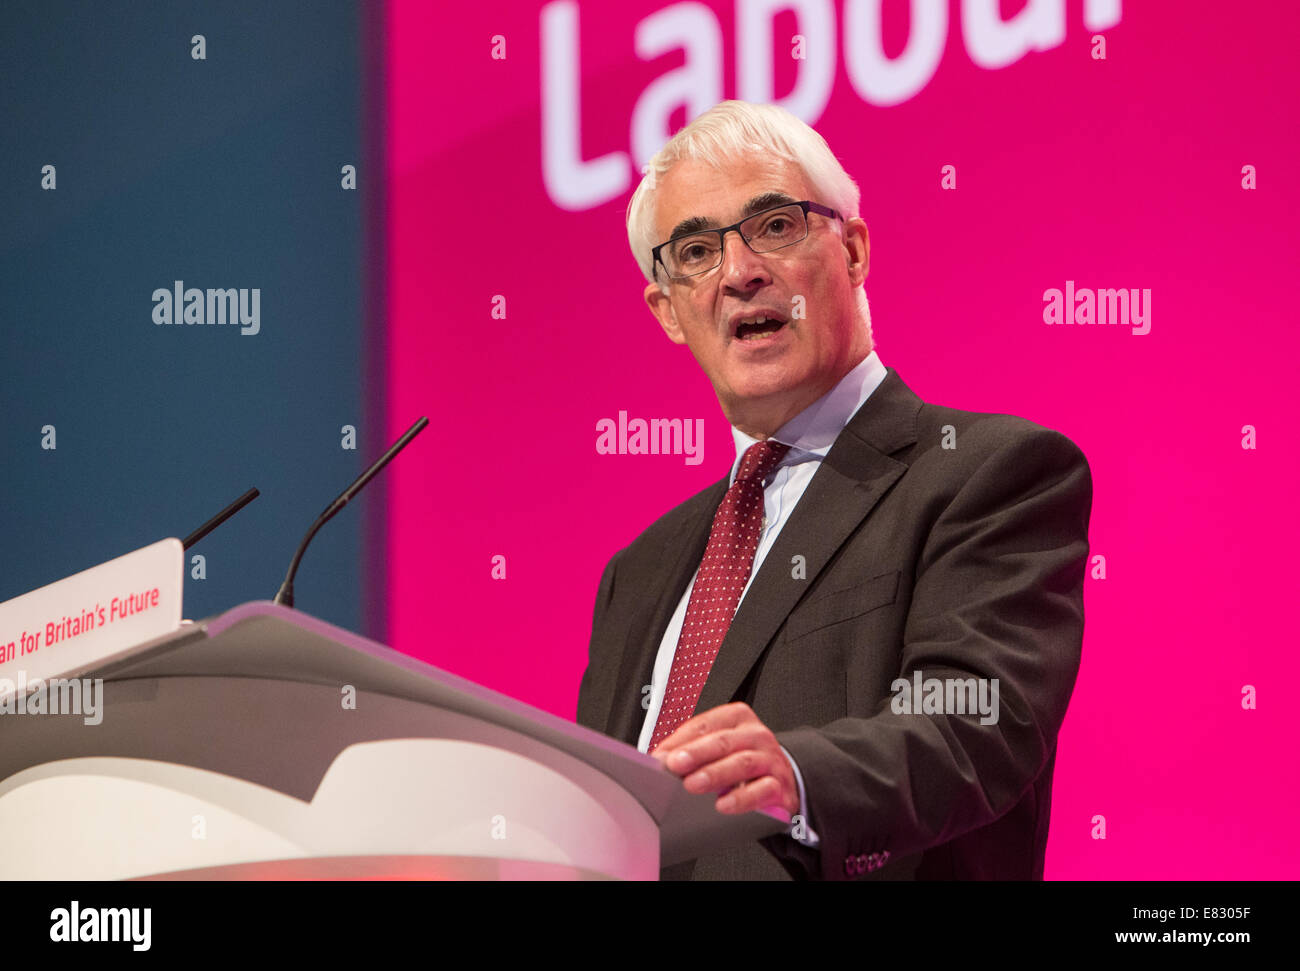 Alistair Darling-MP for for Edinburgh South West and leader of the 'Better together' campaign in Scotland - Stock Image